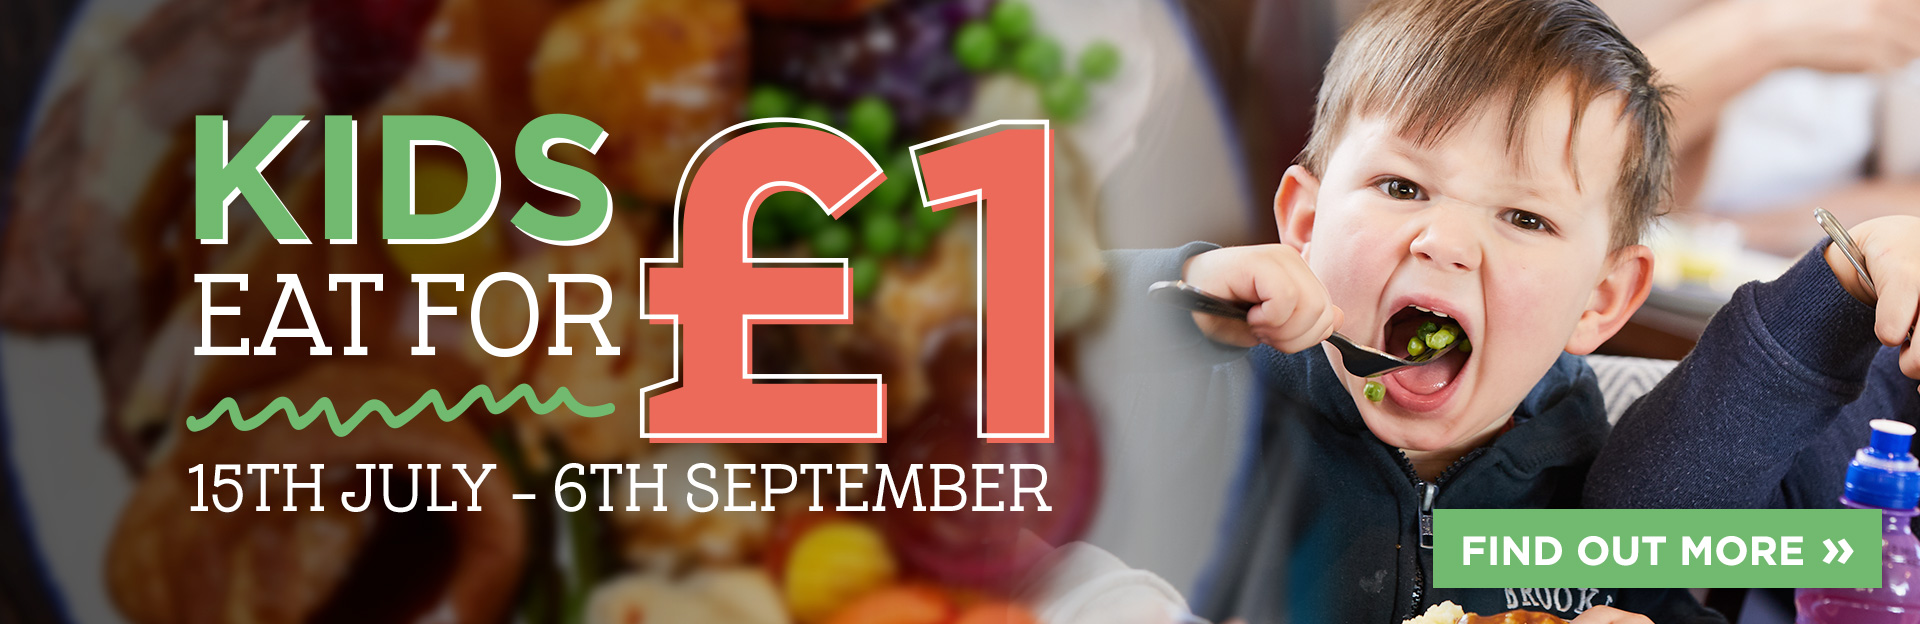 Kids Eat for £1 at The West Bulls